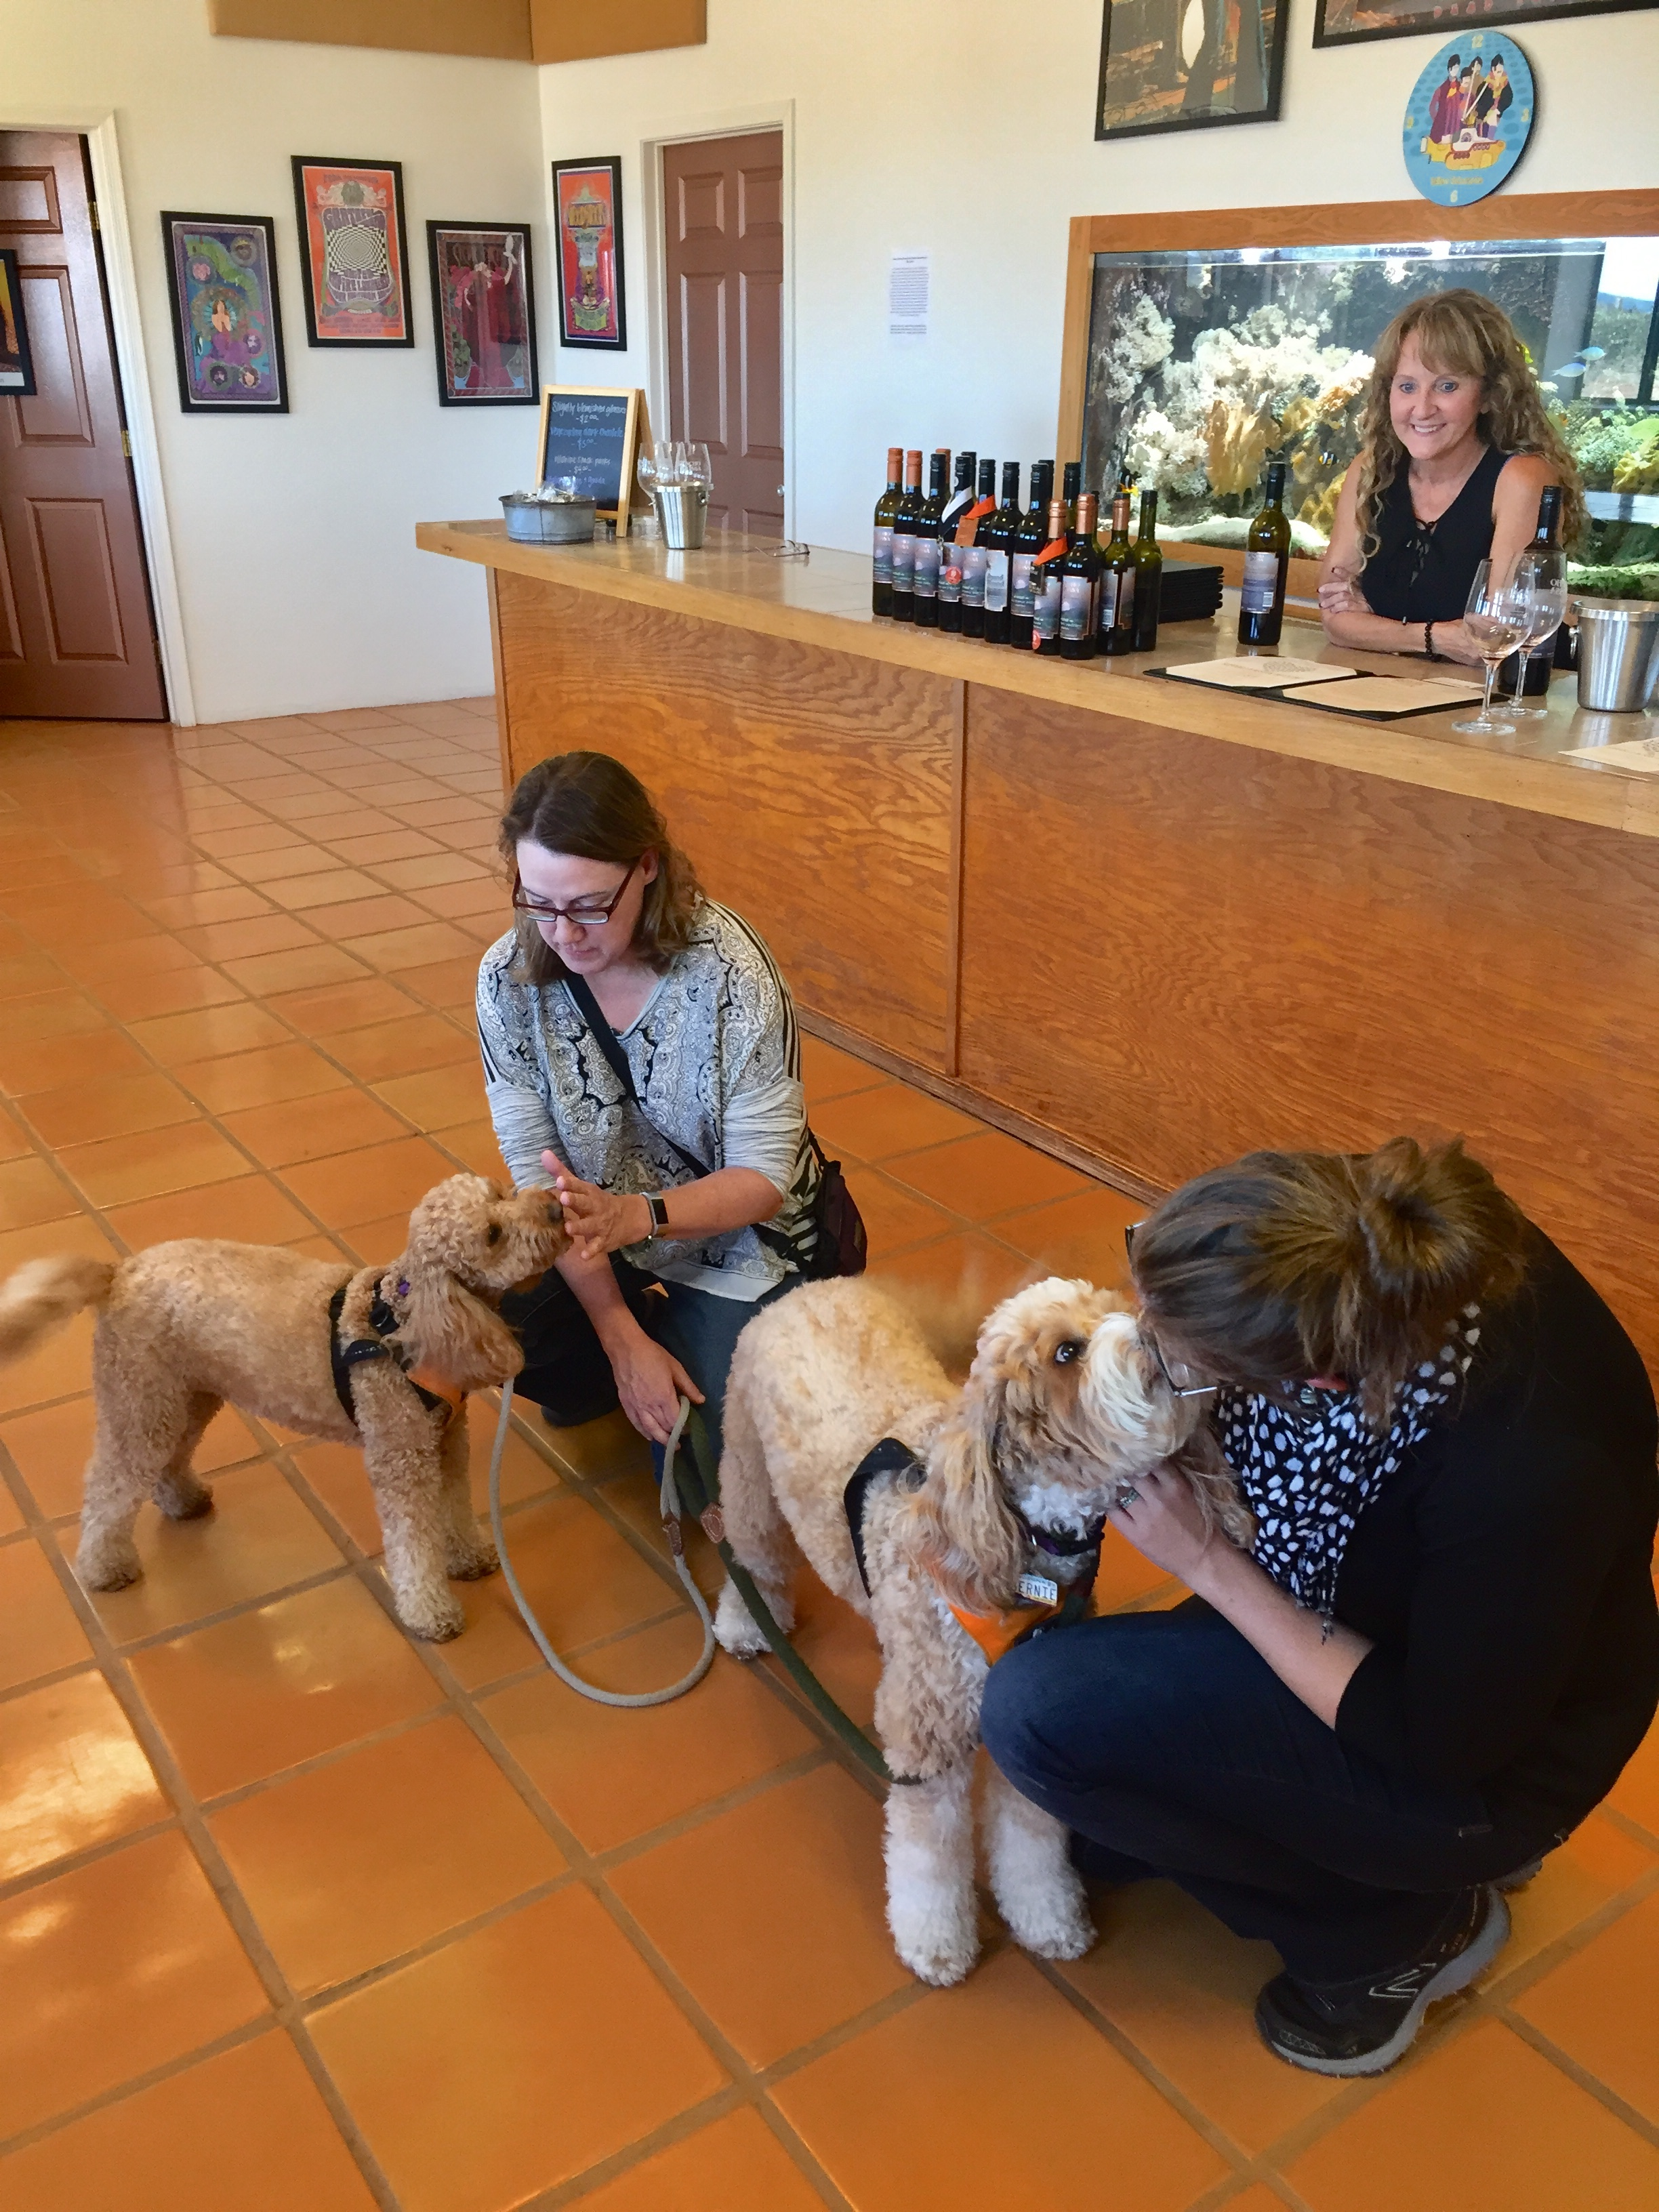 Labradoodles Bernie and Lizzie McSquare visit the most dog-friendly winery in Southern Arizona, Rancho Rossa Vineyards in Elgin. Read more about our pack field trip, the wines, and the dedication of owners Chris & Breanna Hamilton to animal rescue. #McSquareDoodles #dogfriendlytravel #SouthernArizona